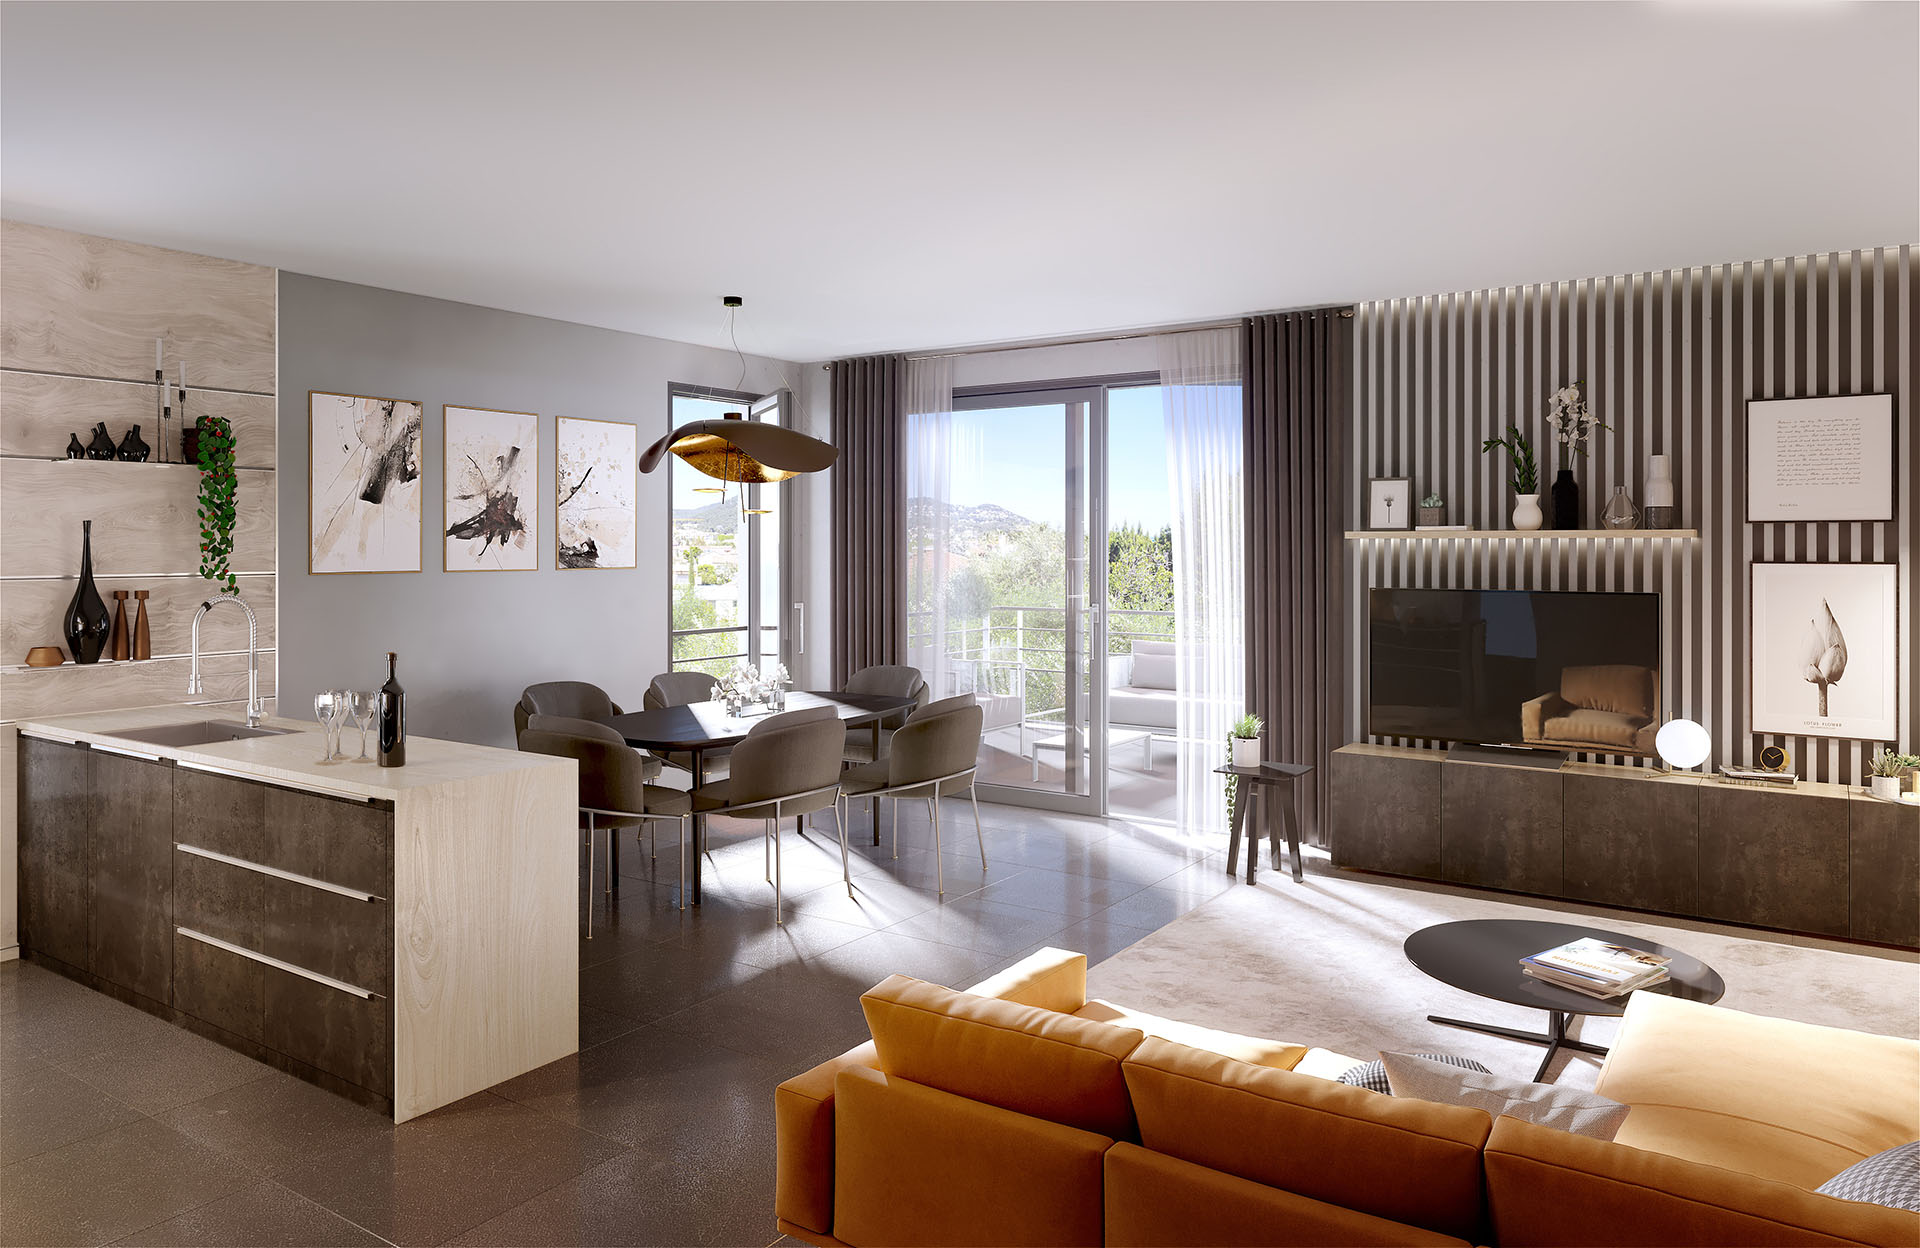 Living room of modern apartment realized in 3D